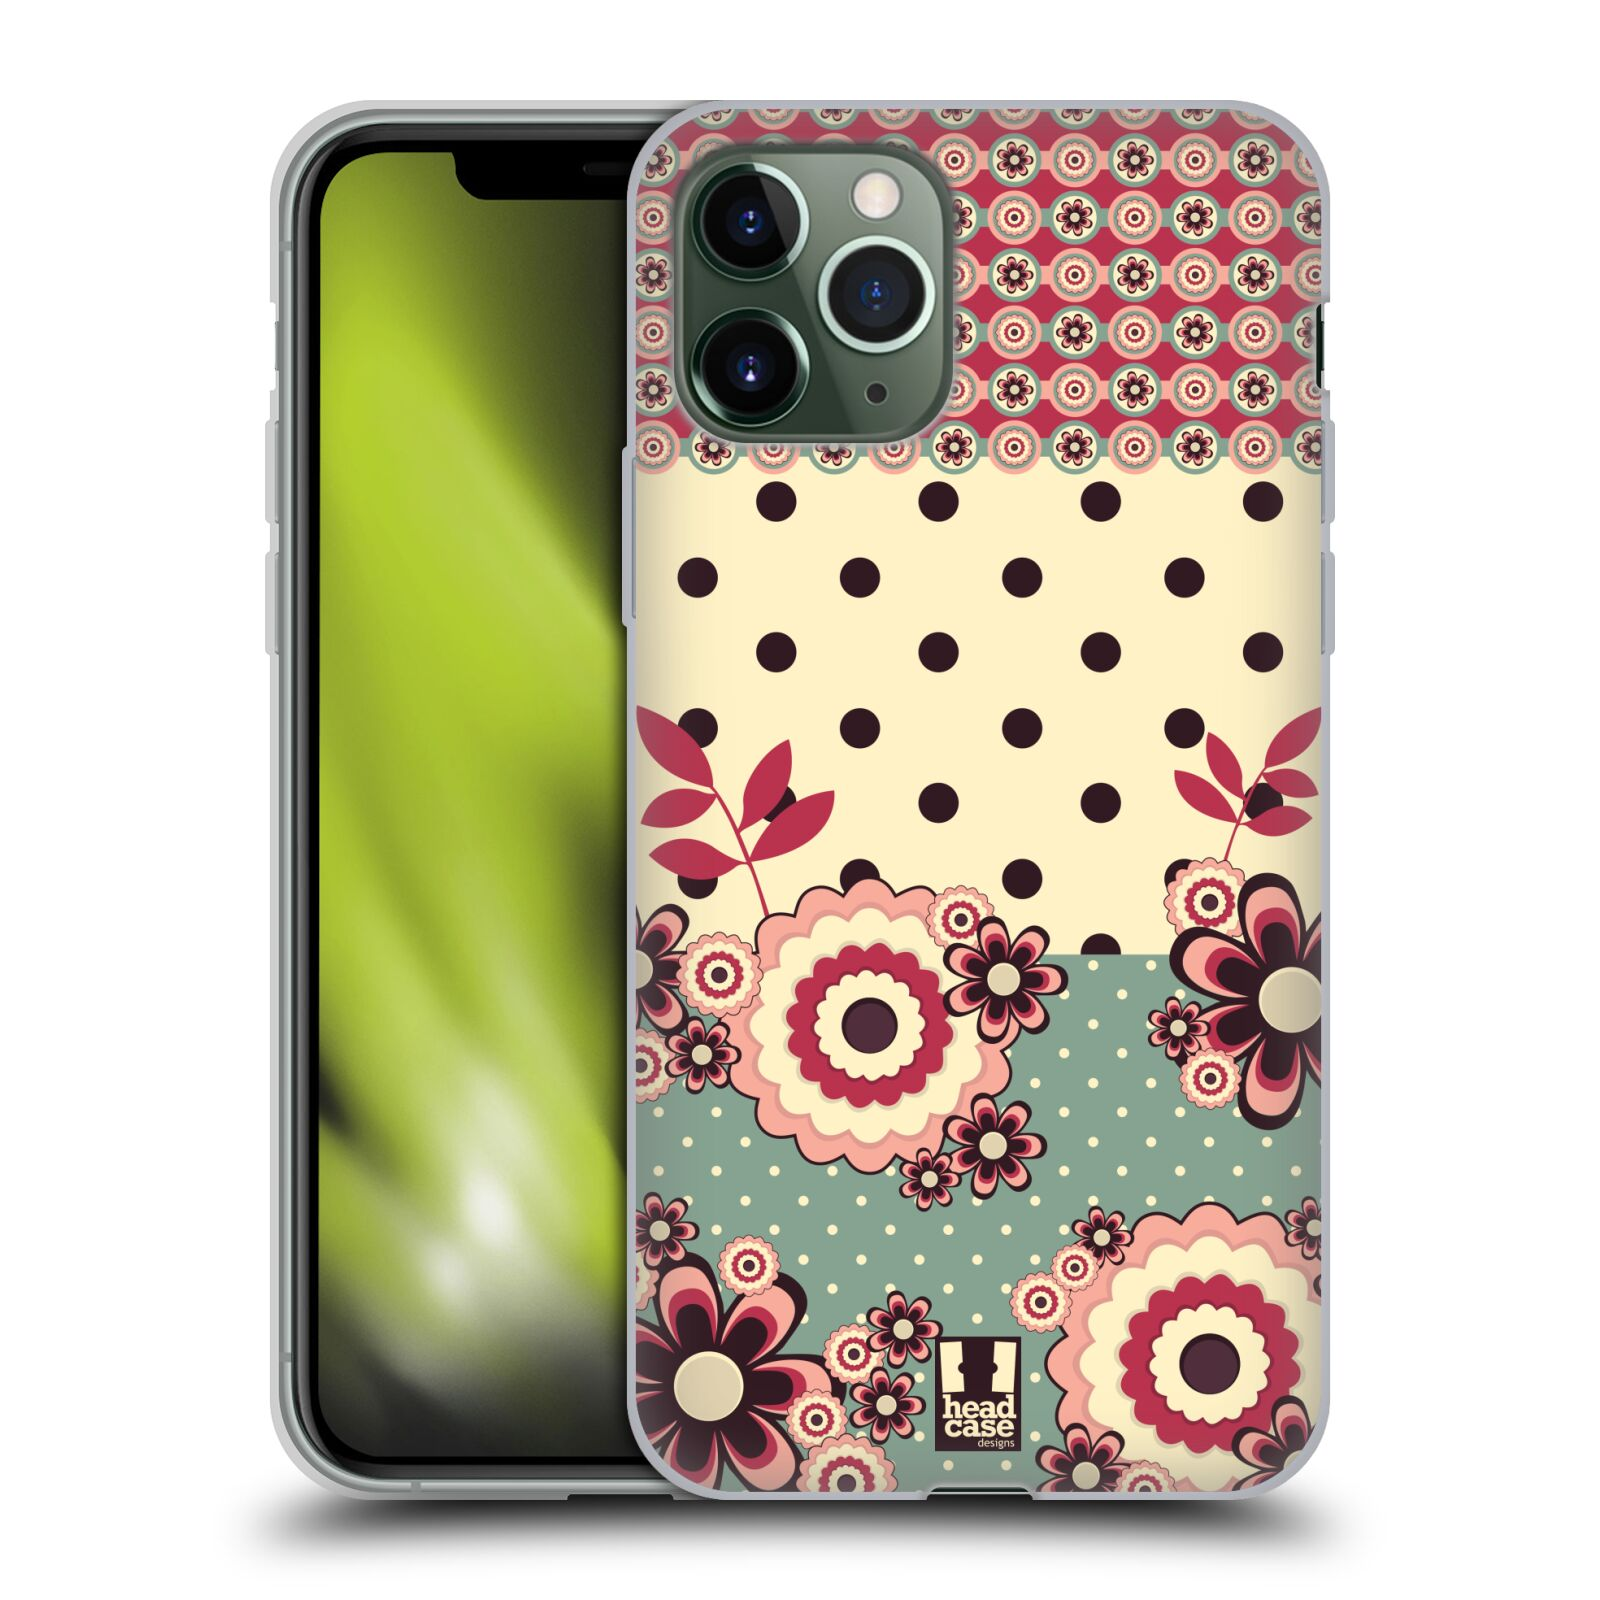 gucci iphone x s max case | Silikonové pouzdro na mobil Apple iPhone 11 Pro - Head Case - KVÍTKA PINK CREAM